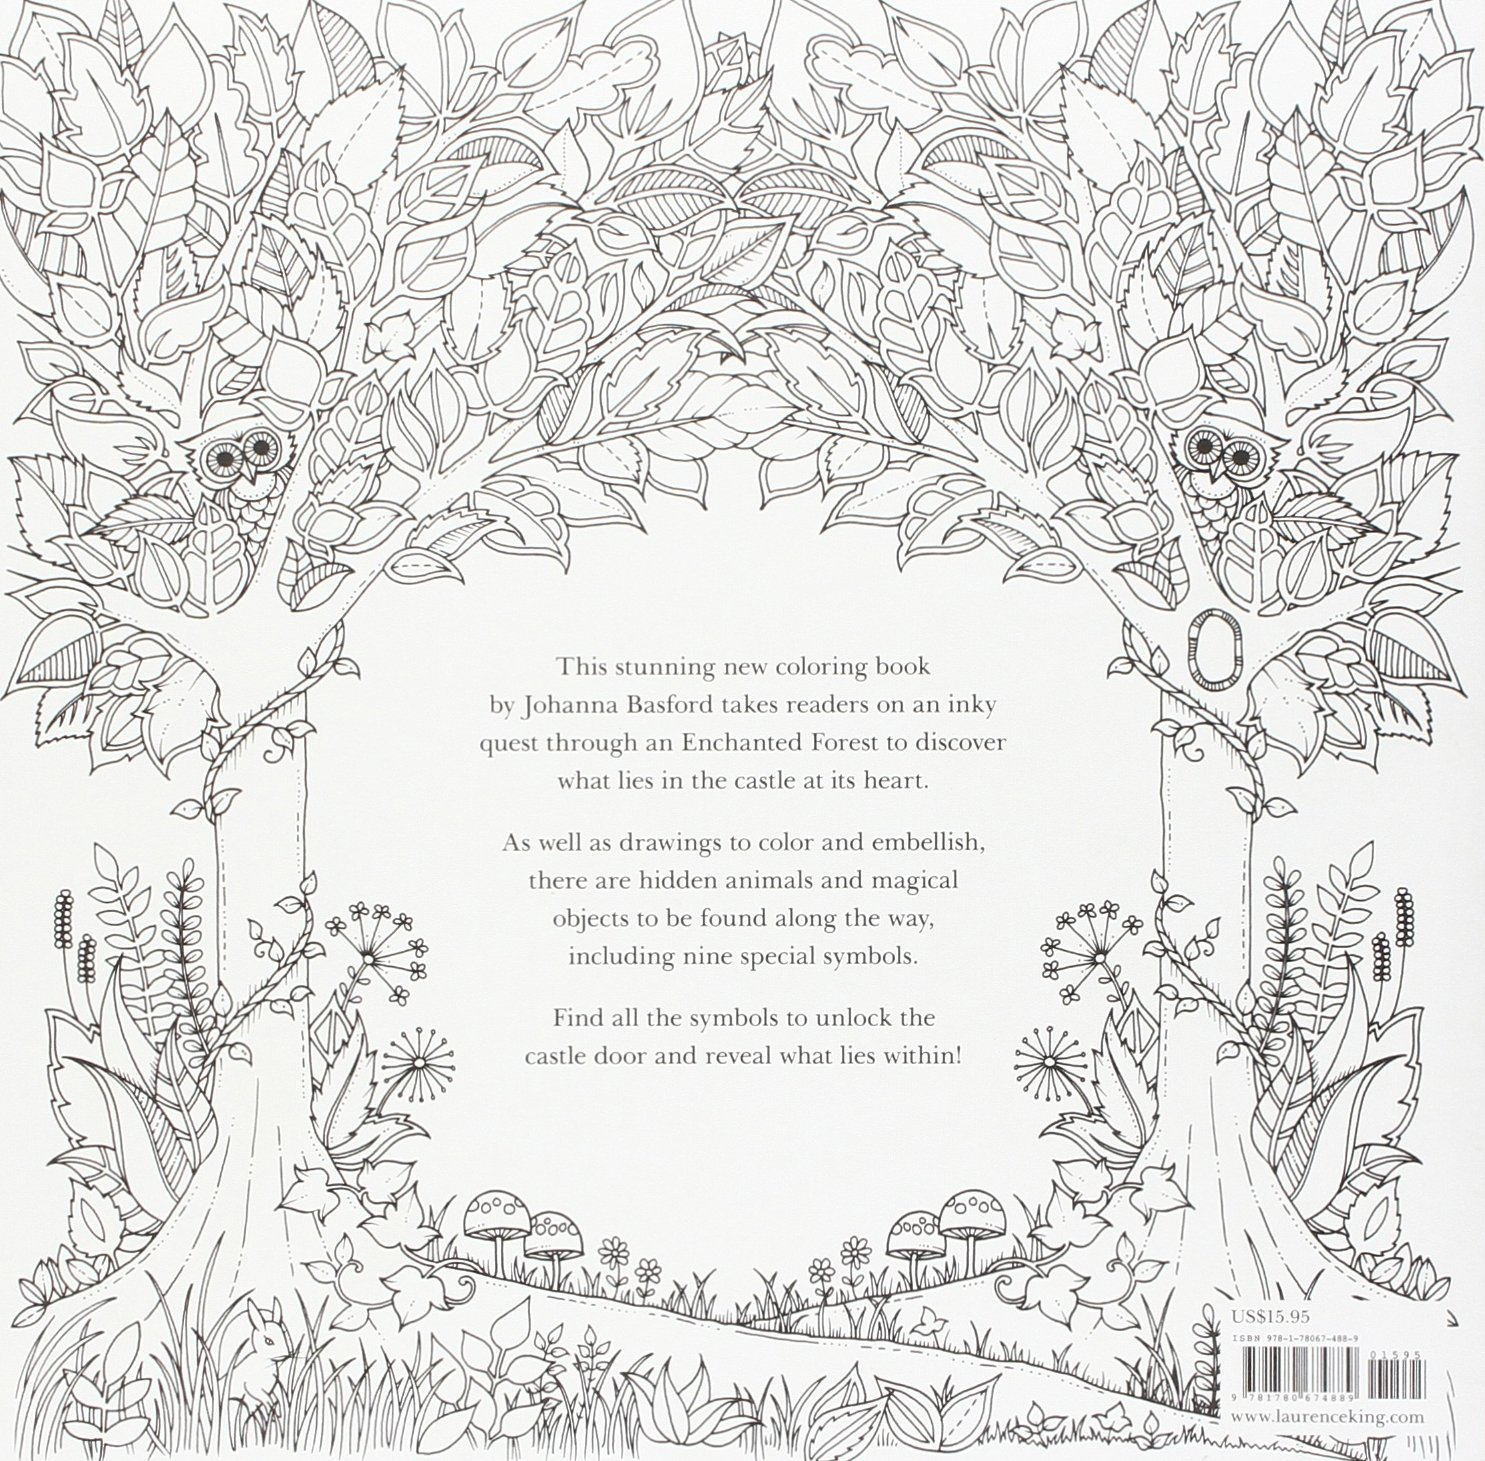 Enchanted Forest An Inky Quest Coloring Book Amazon De Johanna